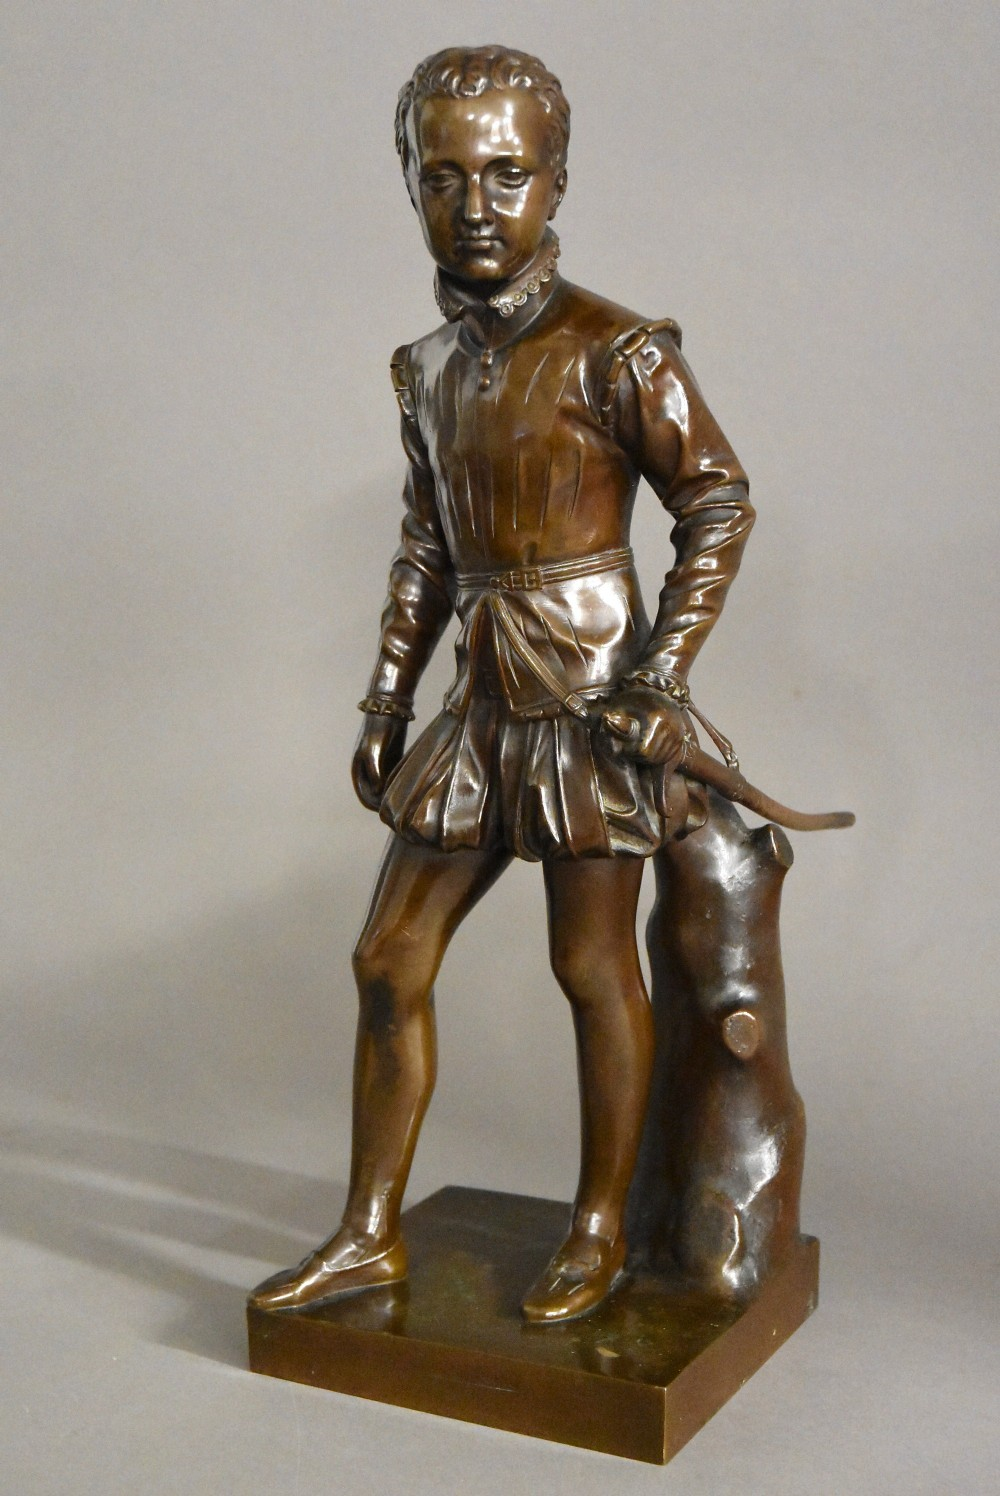 fine quality 19thc french bronze figure of henry ivth of france after francois j bosio stamped barbedienne